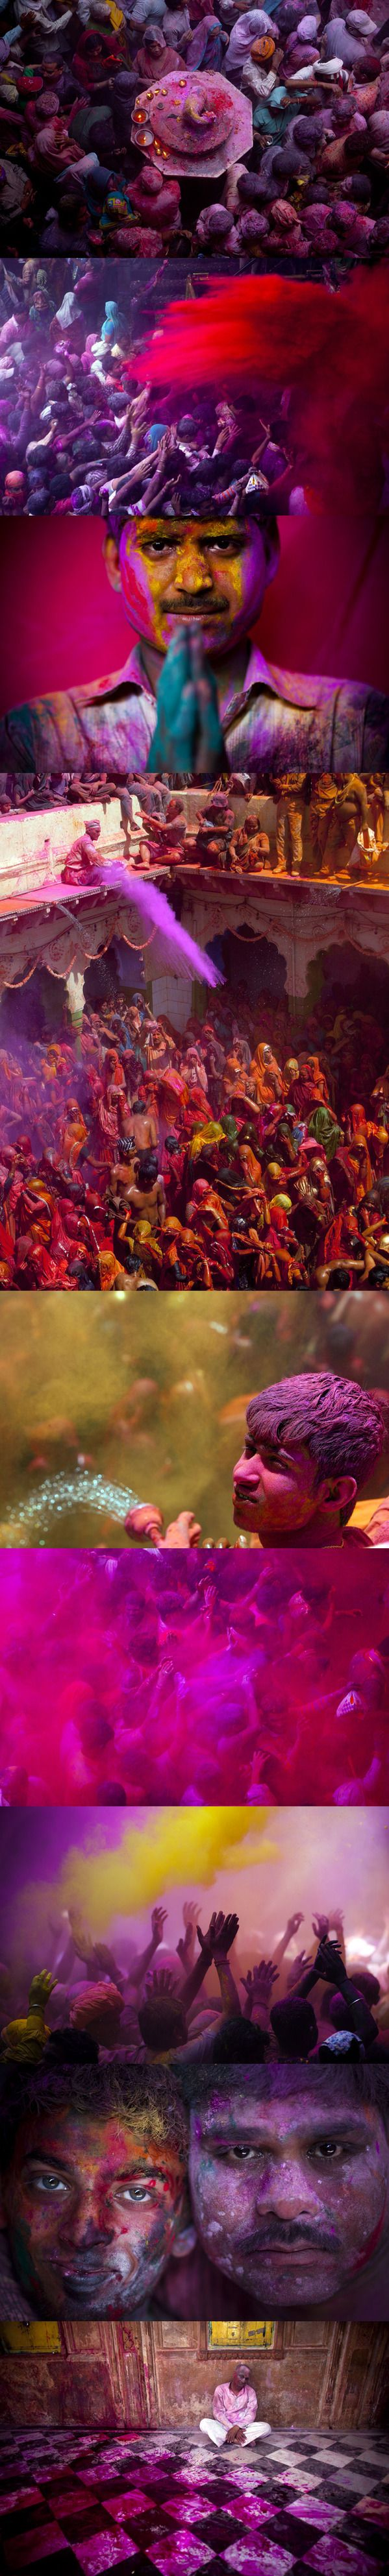 Holli Festival - Hindus in/out of India celebrate the Festival of Colours in the months between March and April. It is to celebrate the Hindu religious defeat of evil by God. It is also to thank God and celebrate the arrival of Spring - the Harvest season. India - the Land of Colours!